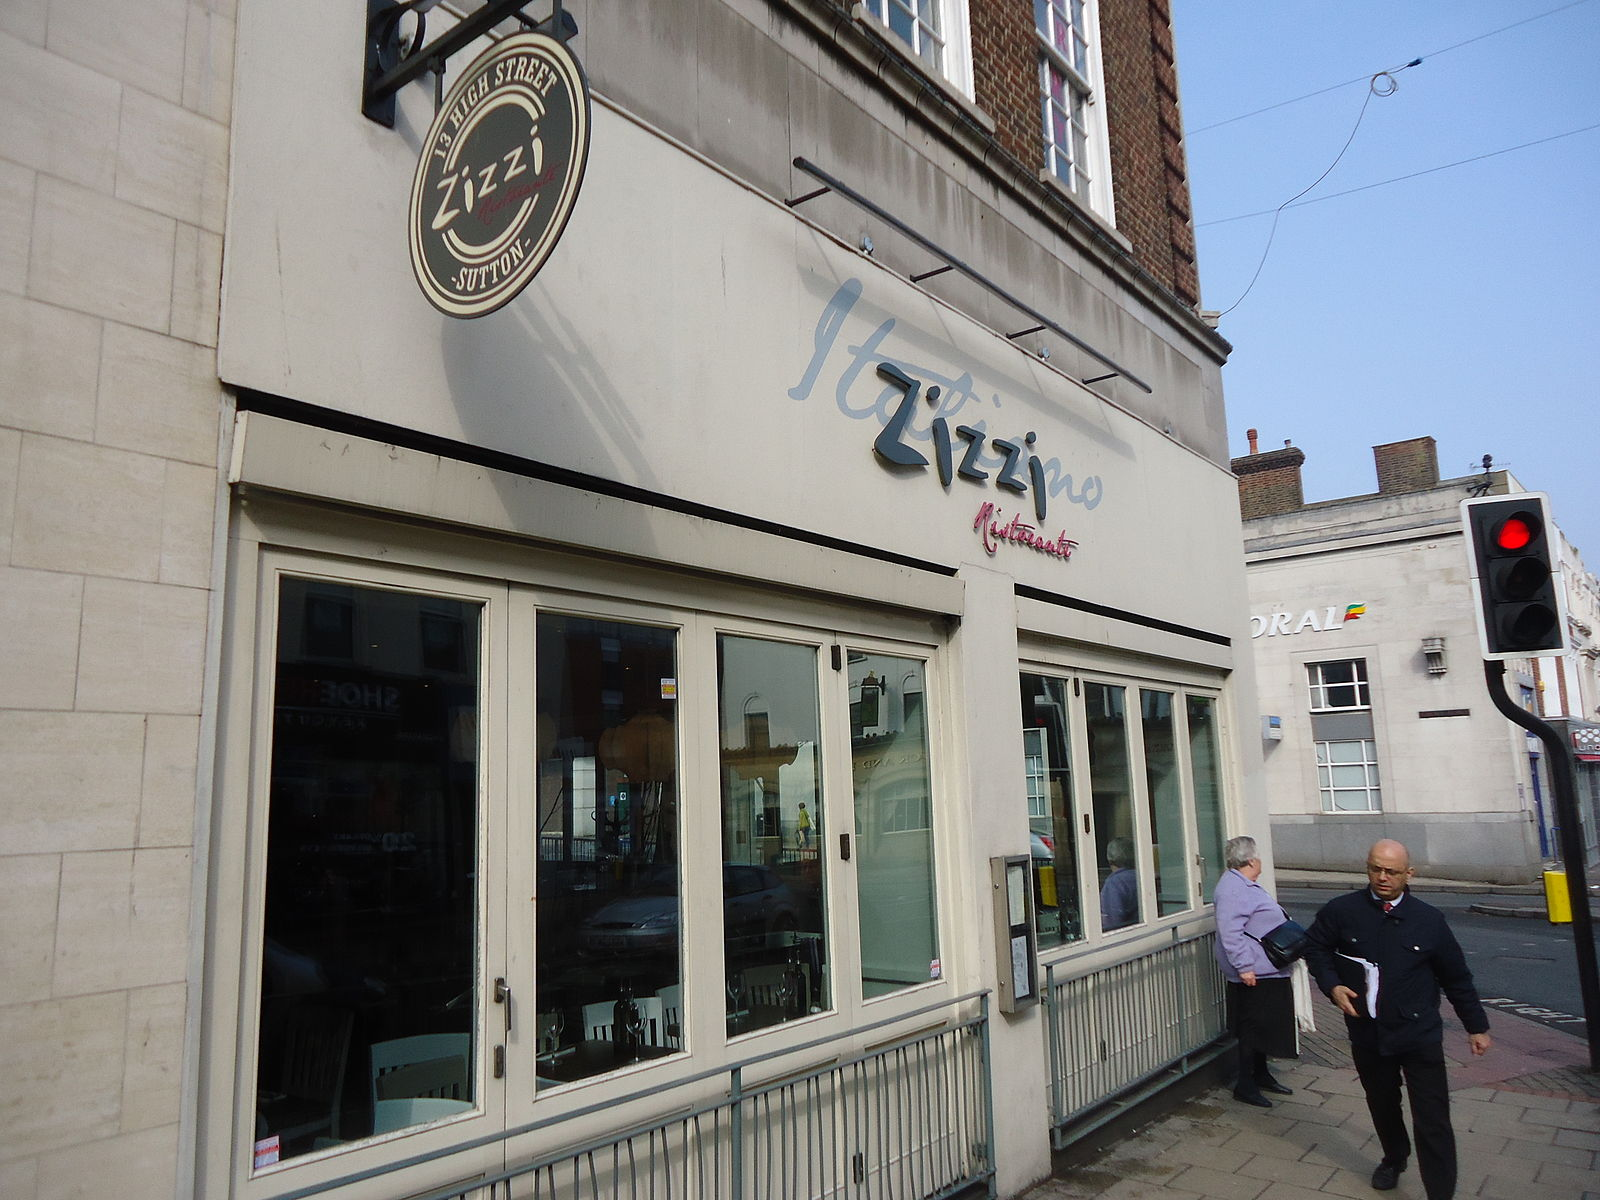 sutton_surrey_london_-_zizzi_1